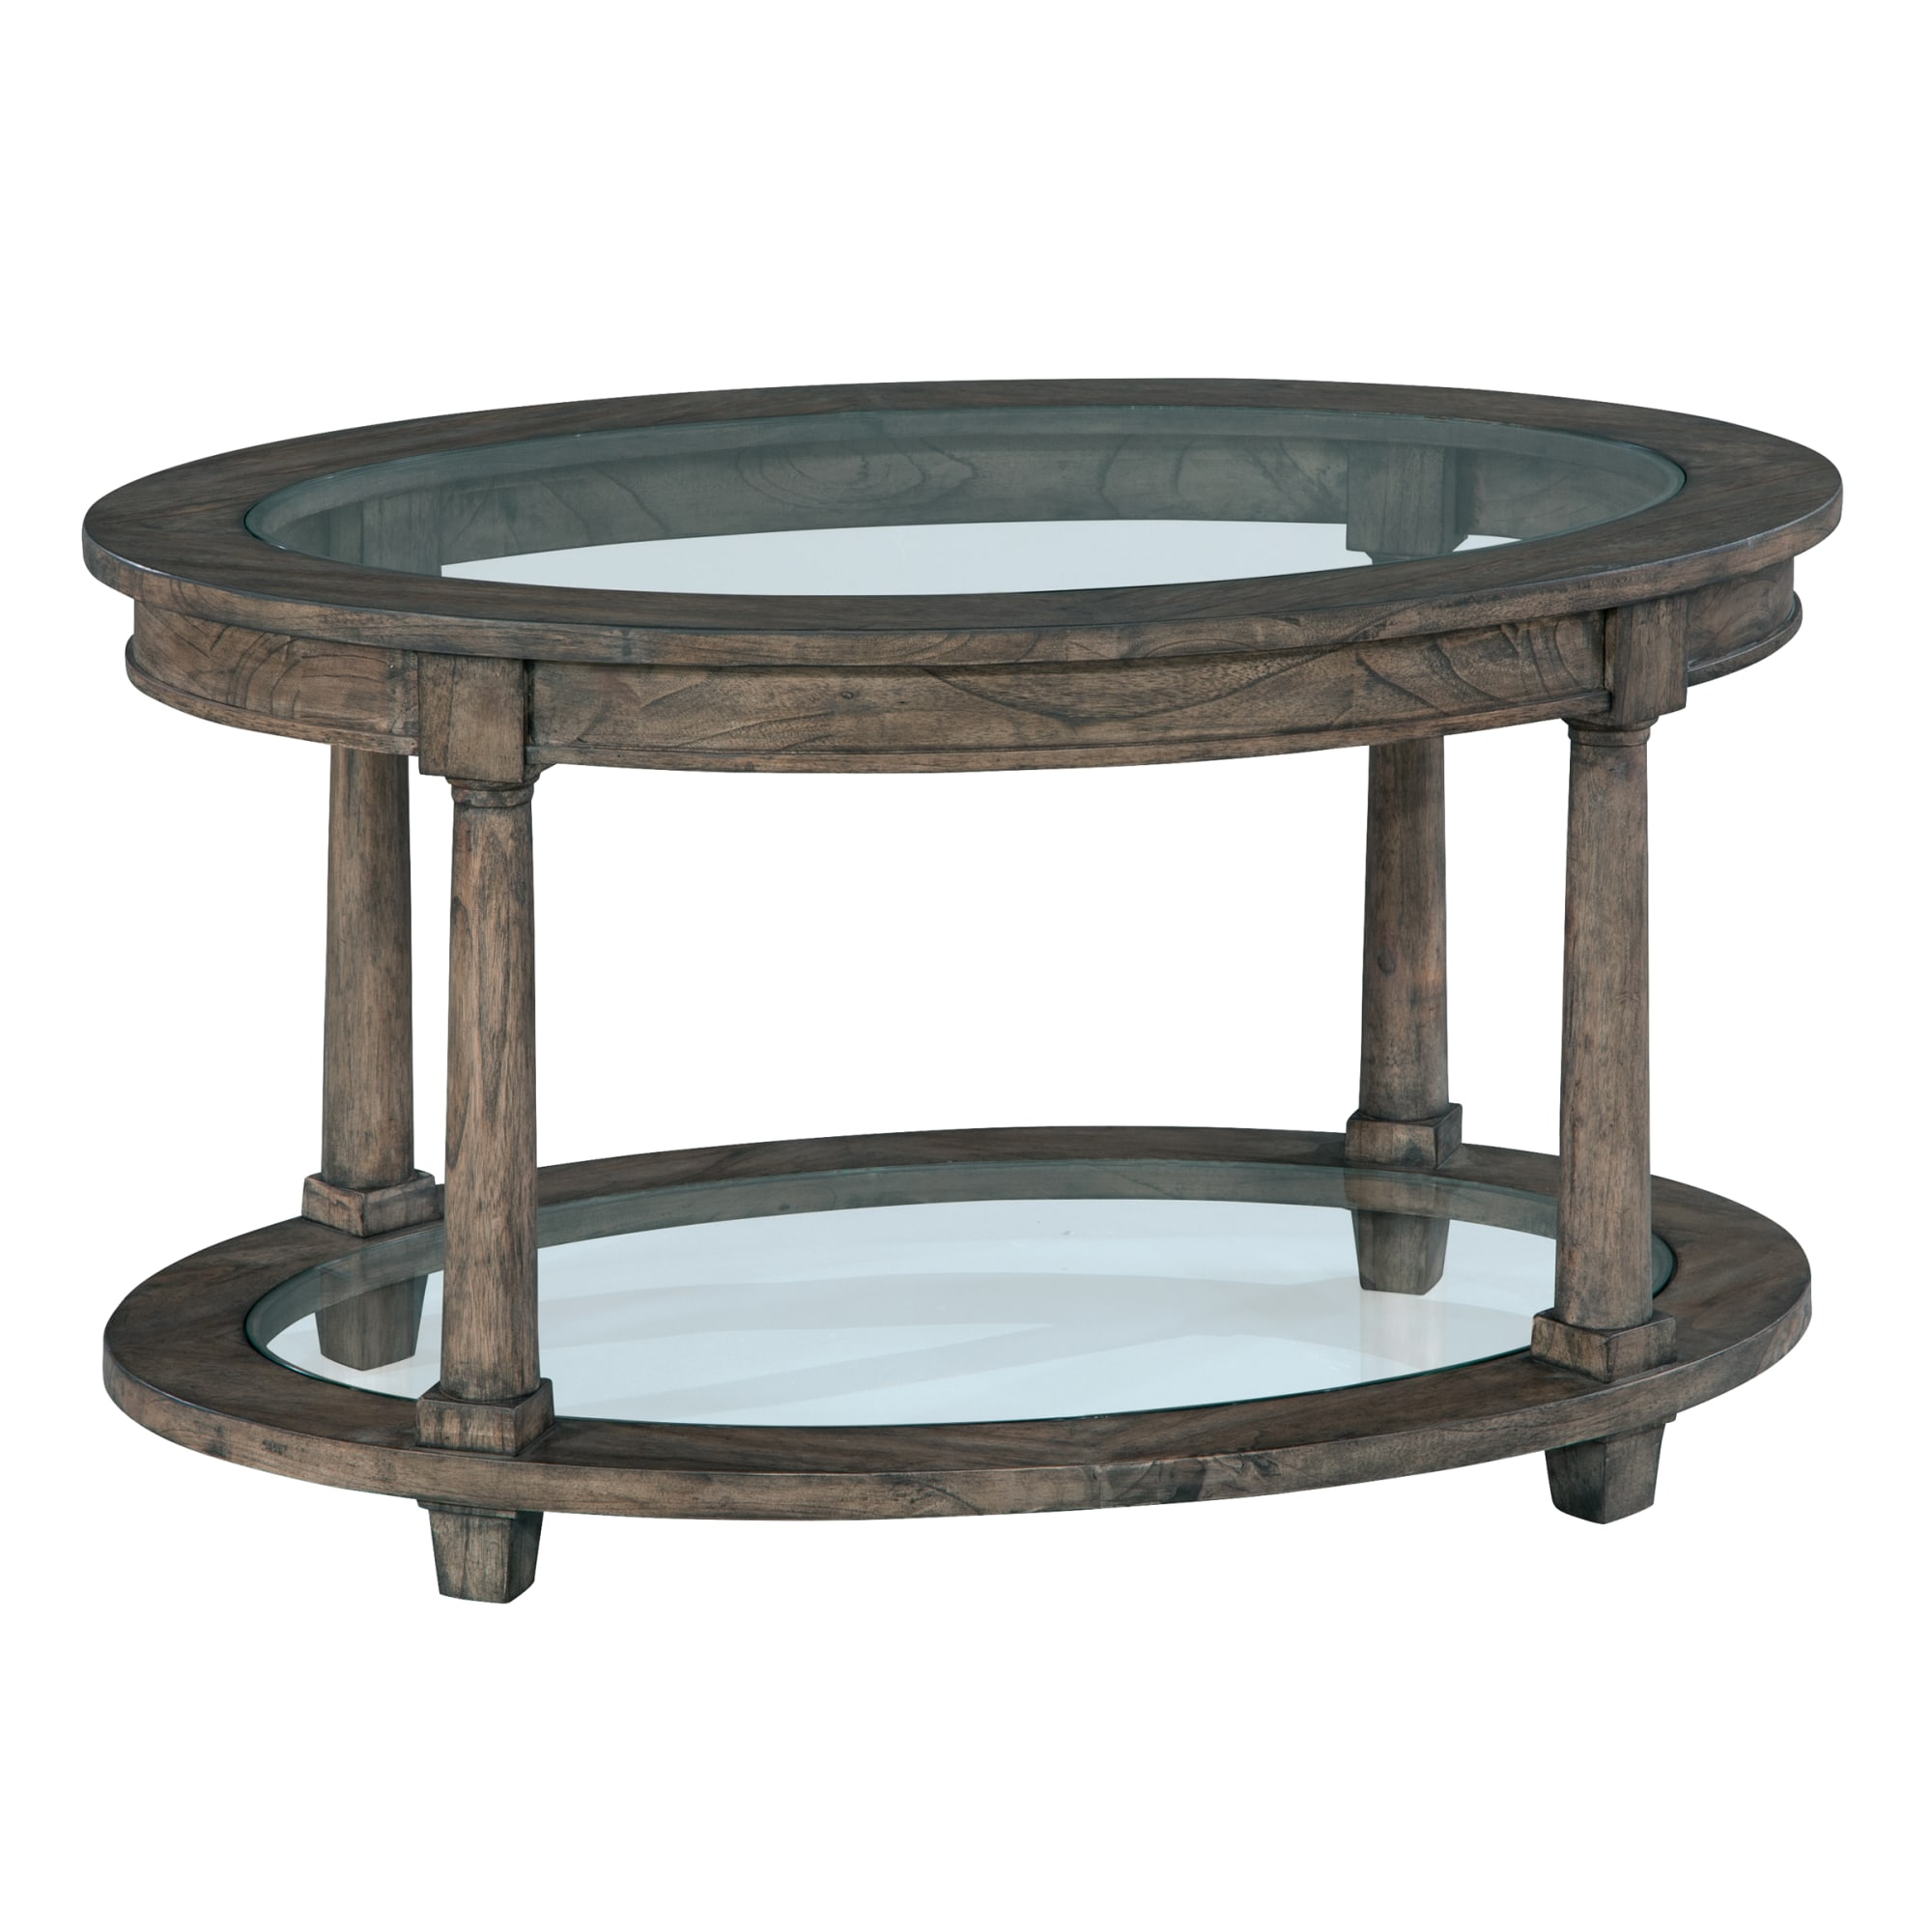 Image for 2-3505 Lincoln Park Oval Coffee Table from Hekman Official Website